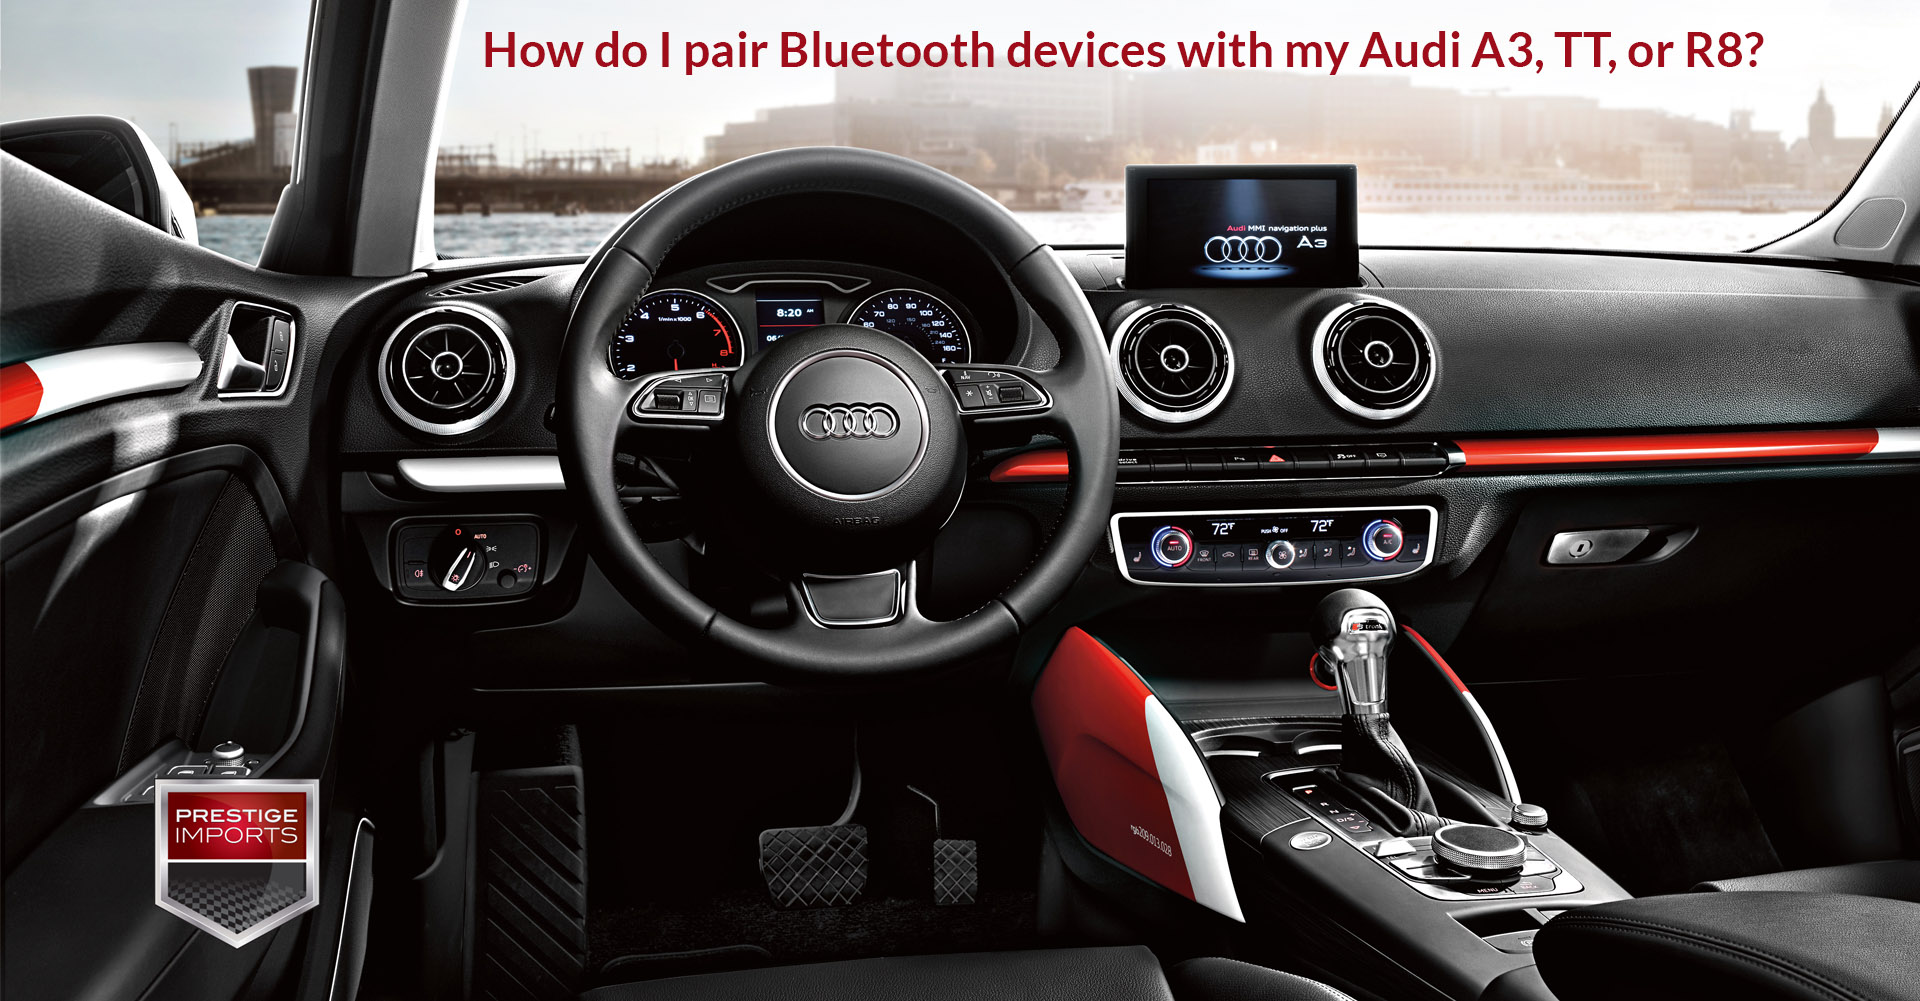 How Do I Pair Bluetooth Devices With My Audi A3 Tt Or R8 2005 A4 Radio Photo Of The Cockpit New Used To Illustrate Article